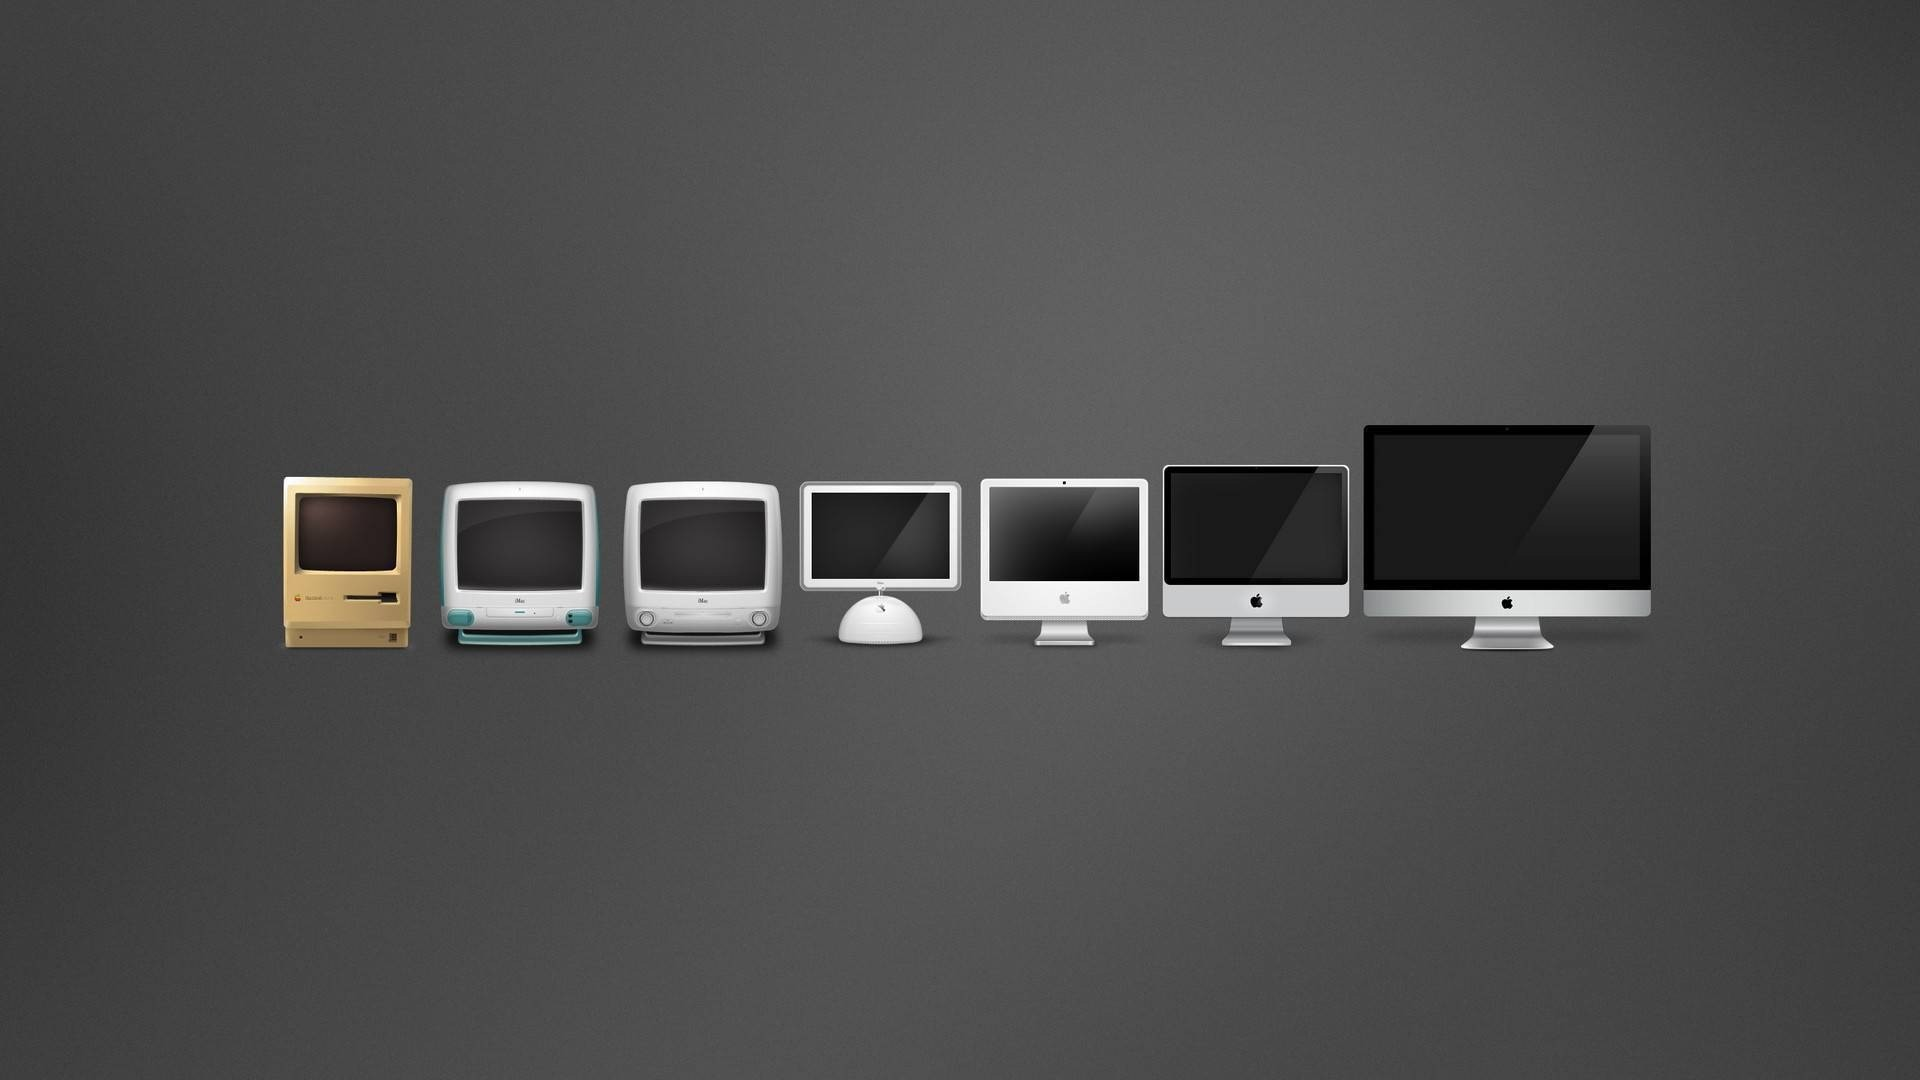 Evolution of Mac (From Lifehack's 100 Awesome Minimalist Wallpapers)